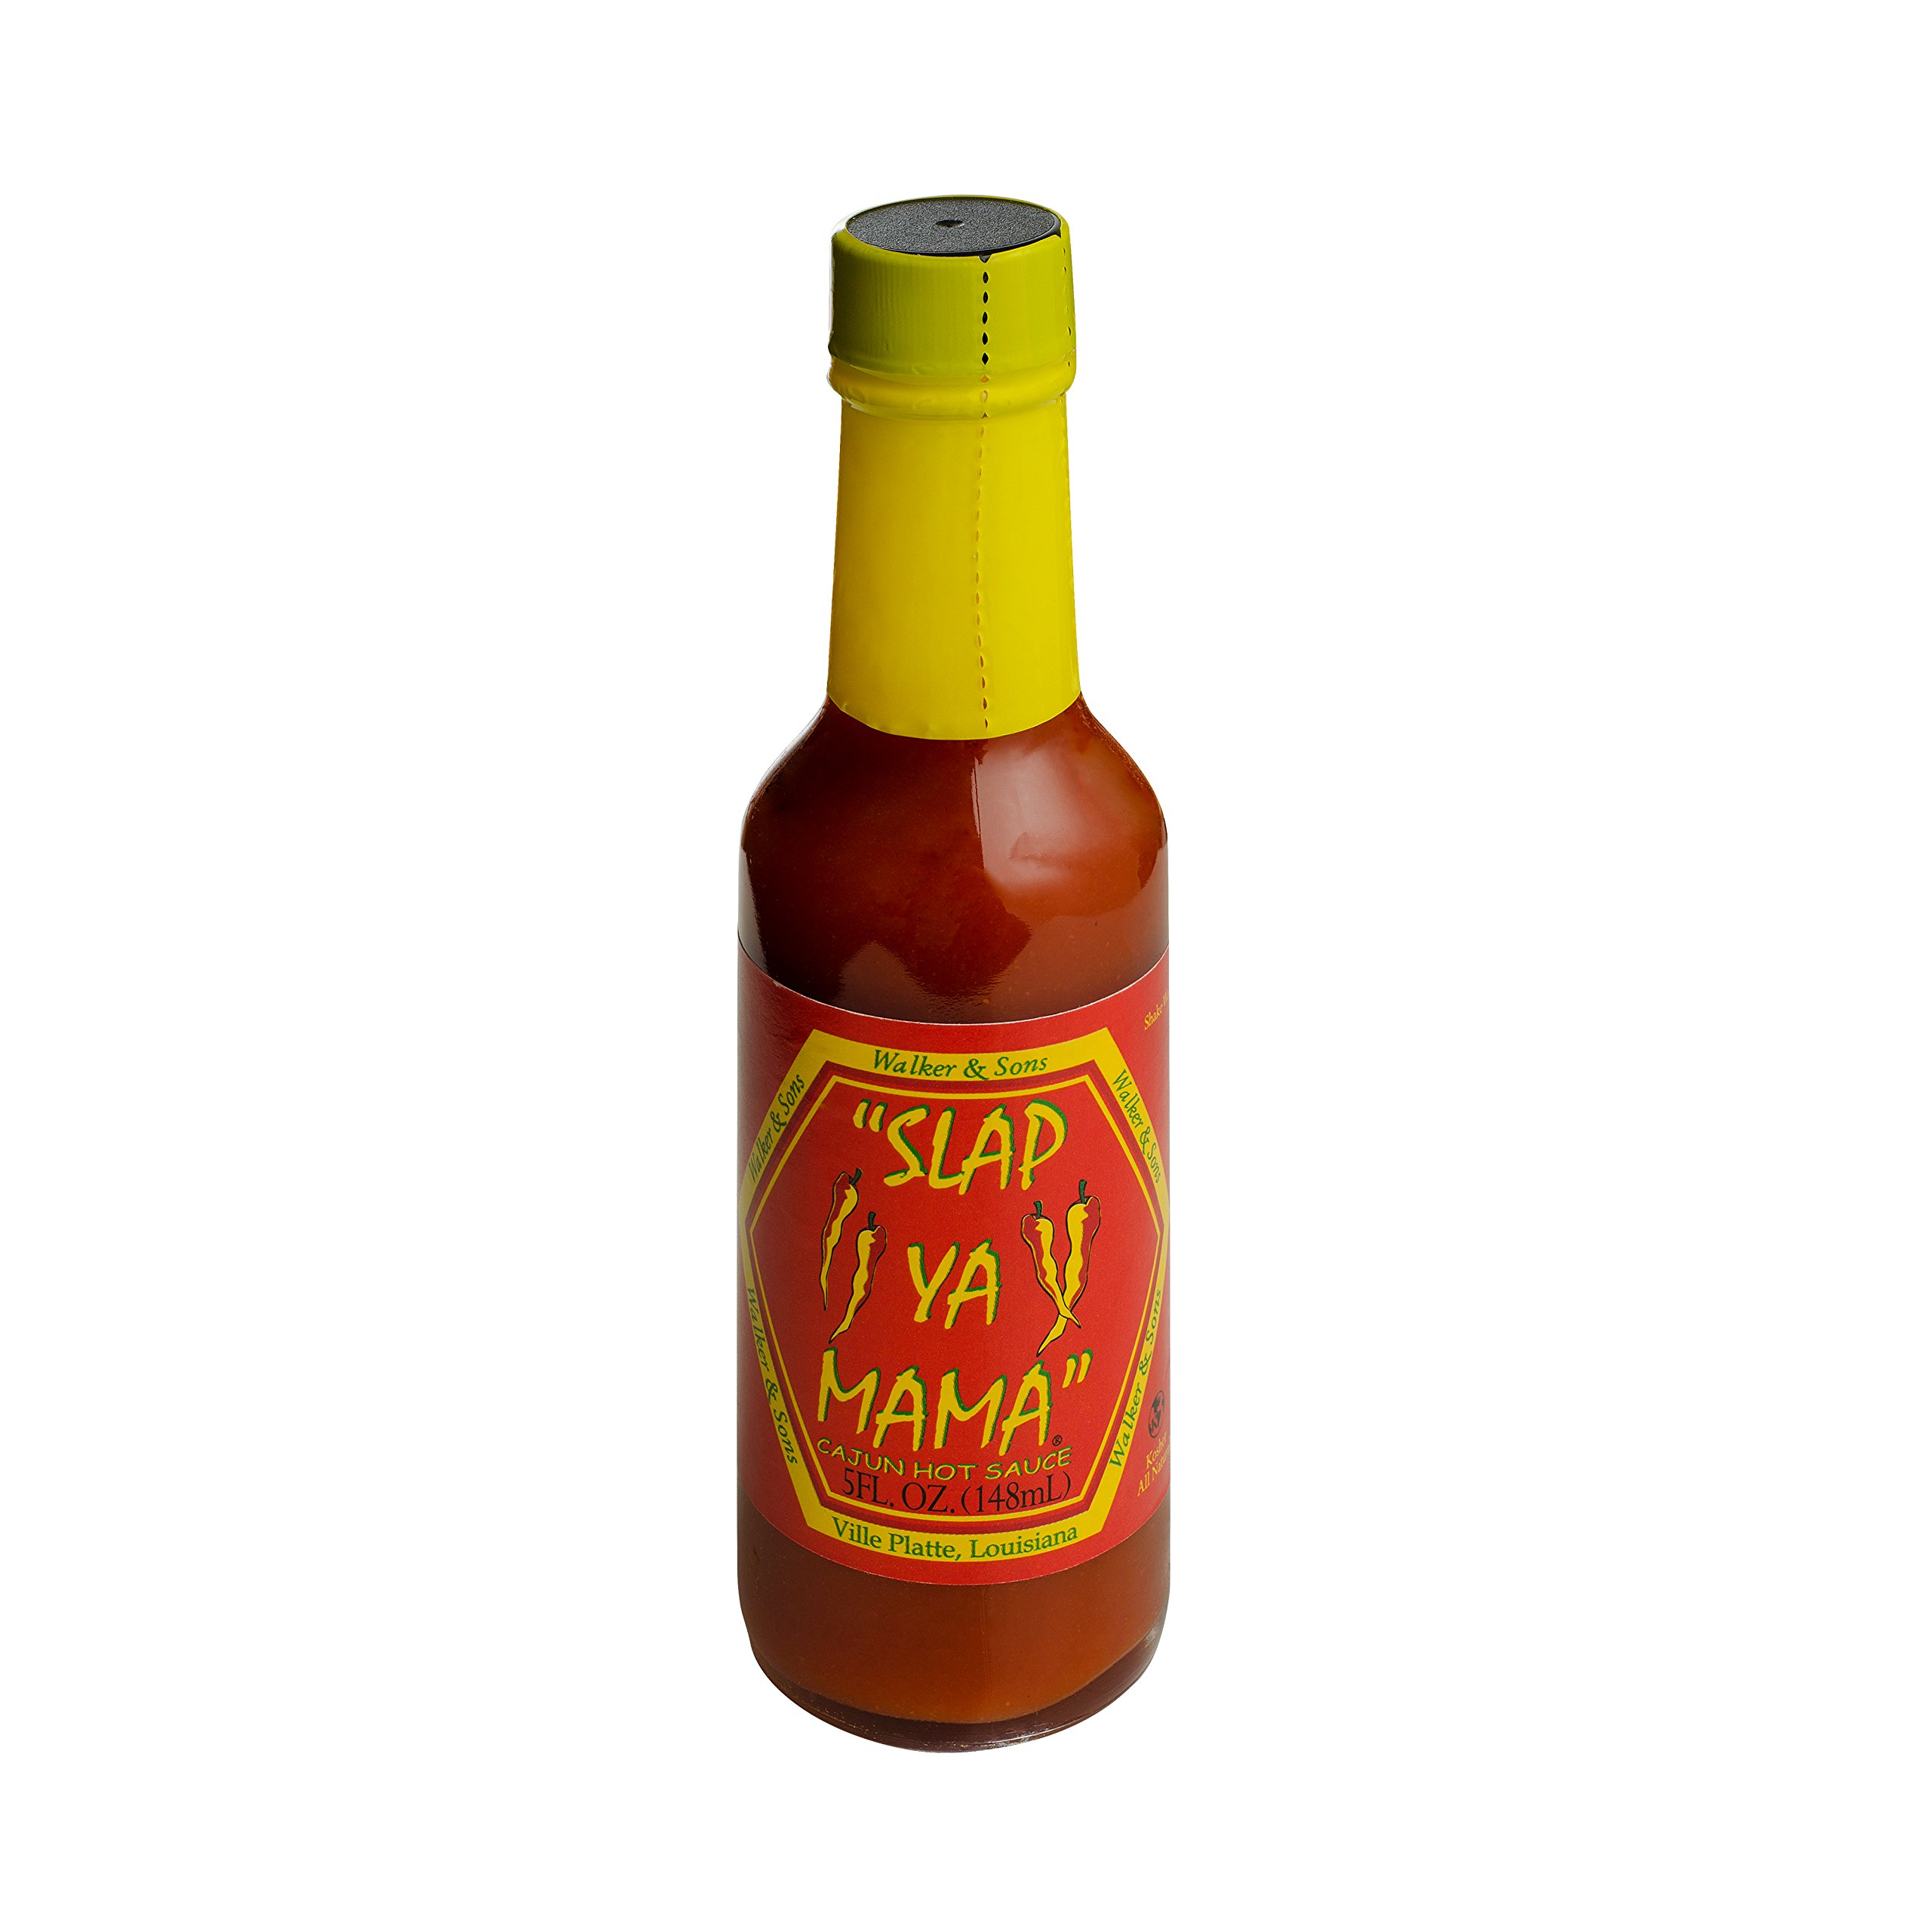 Slap Ya Mama All Natural Louisiana Style Hot Sauce, Cajun Hot Flavor, 5 Ounce Bottle, Pack of 1